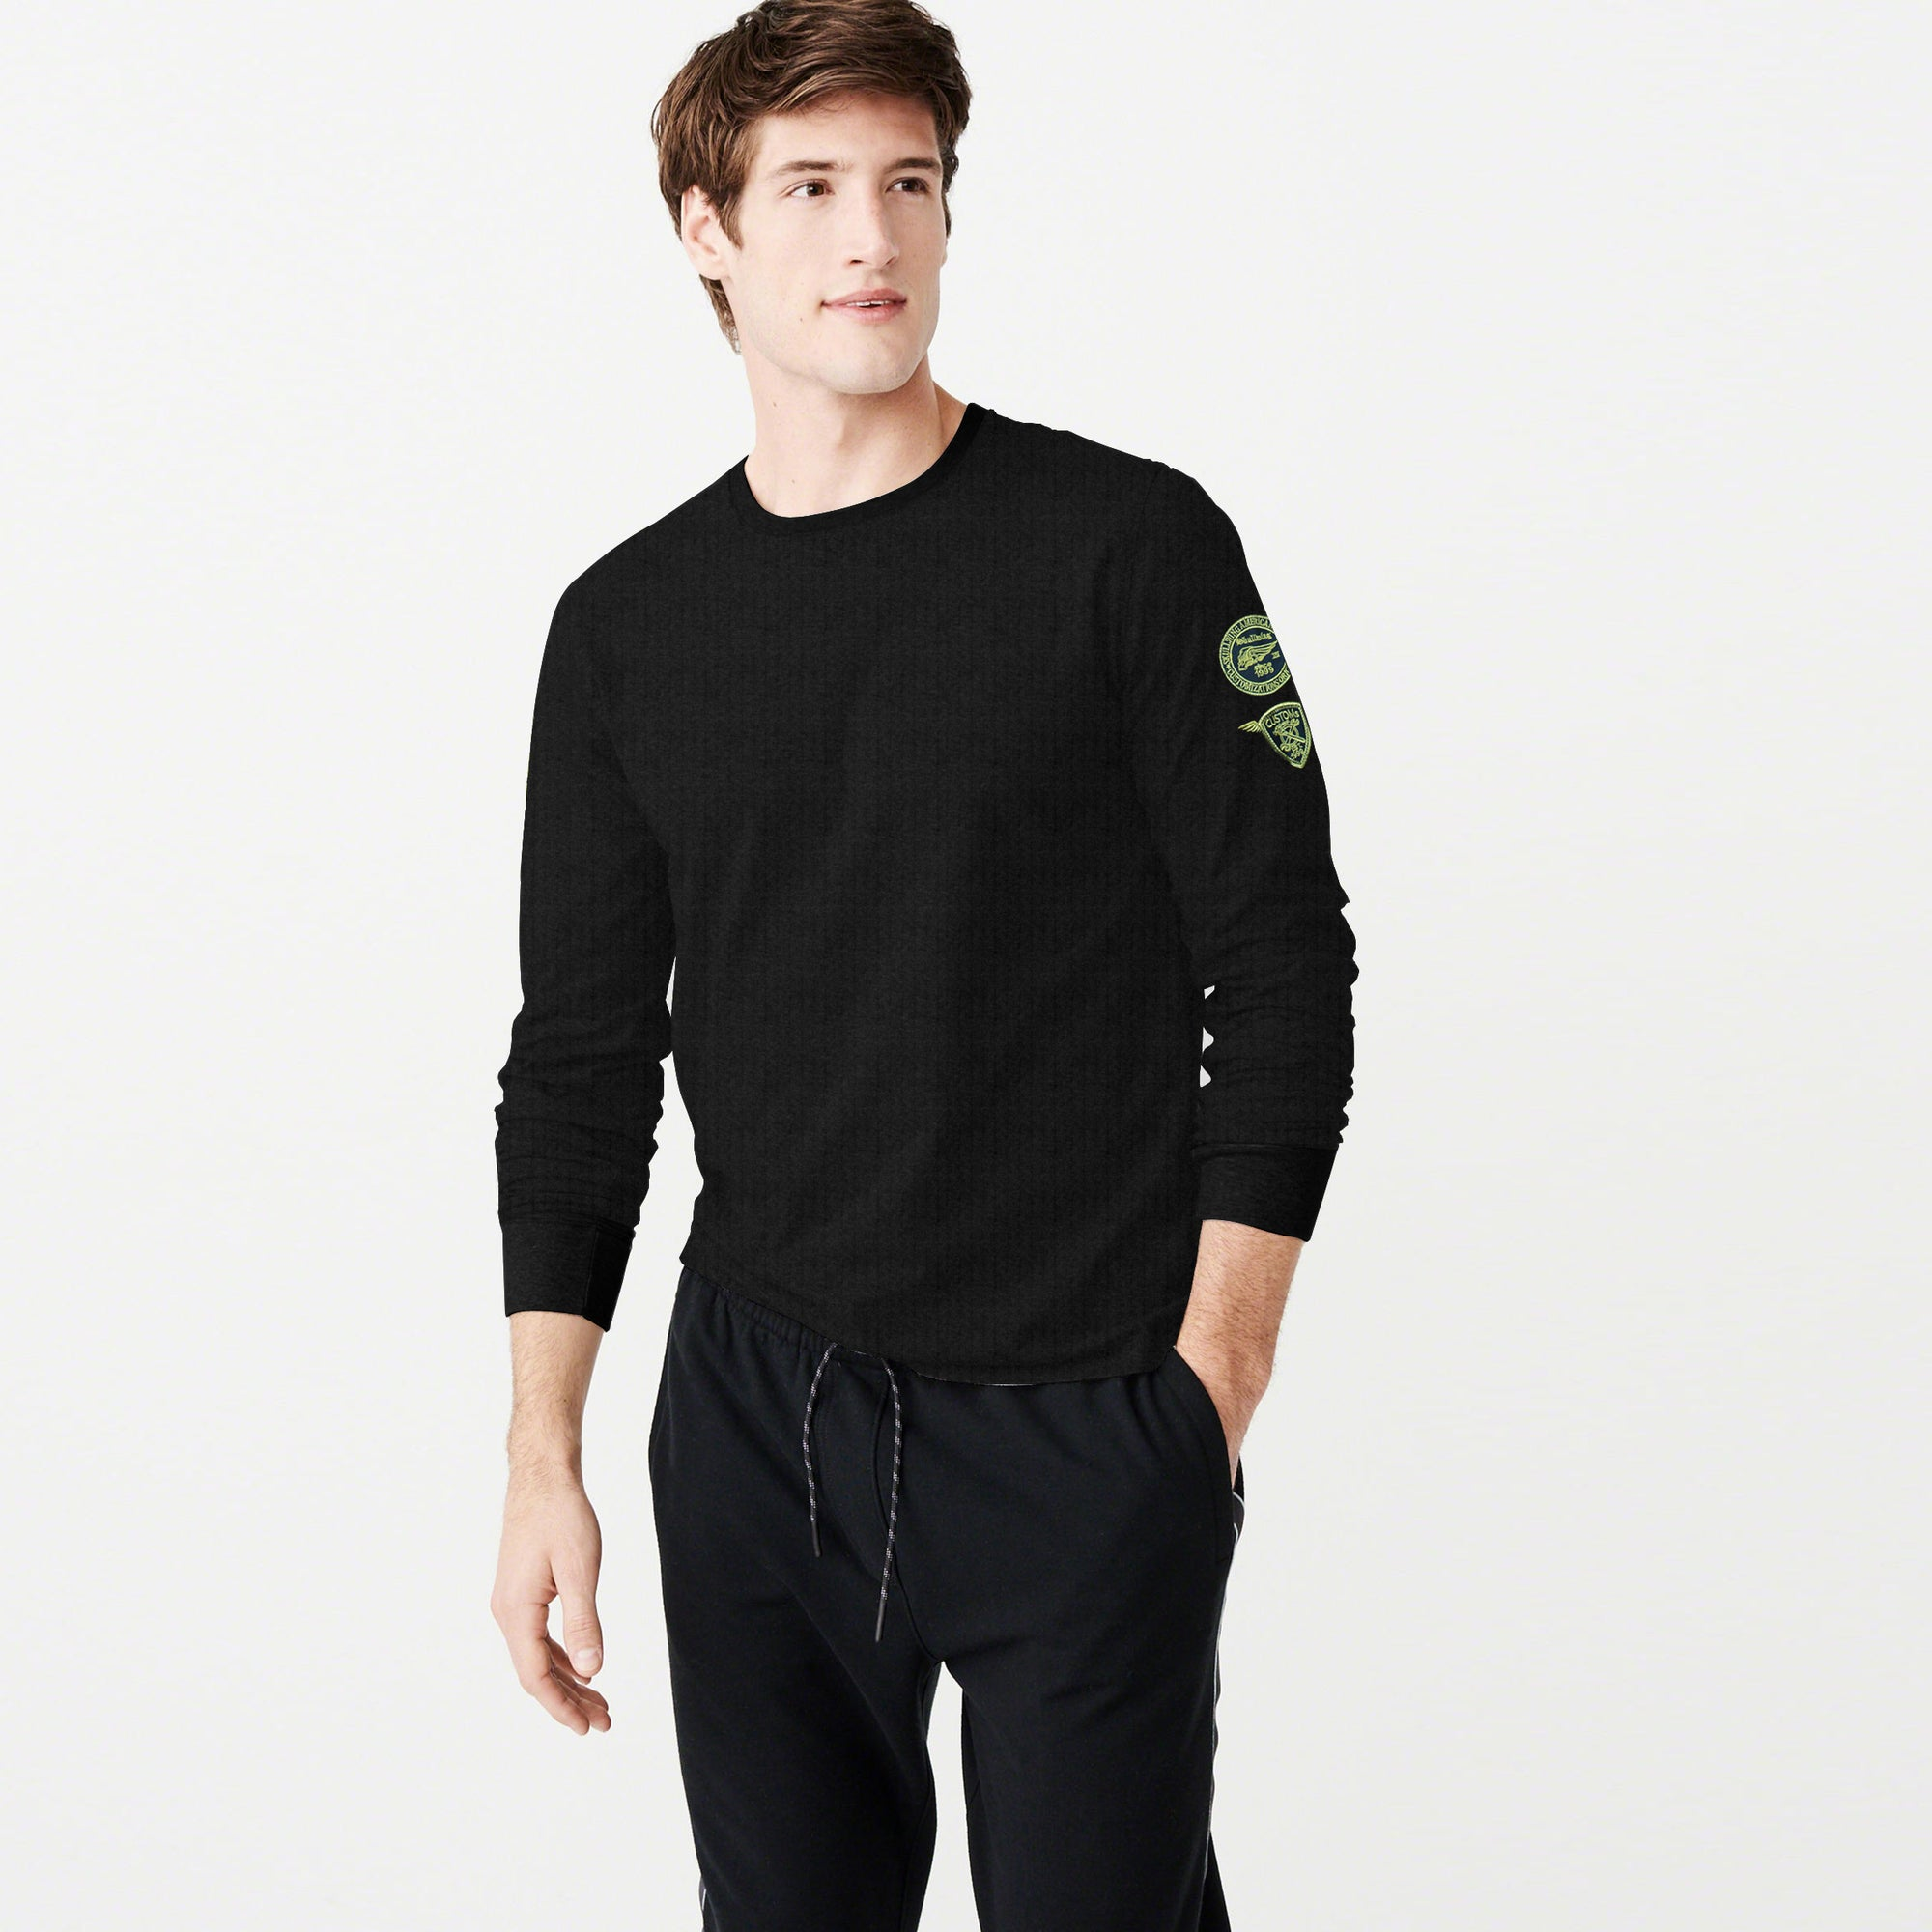 USF Thermal Long Sleeve Tee Shirt For Men-Dark Charcoal-BE5597